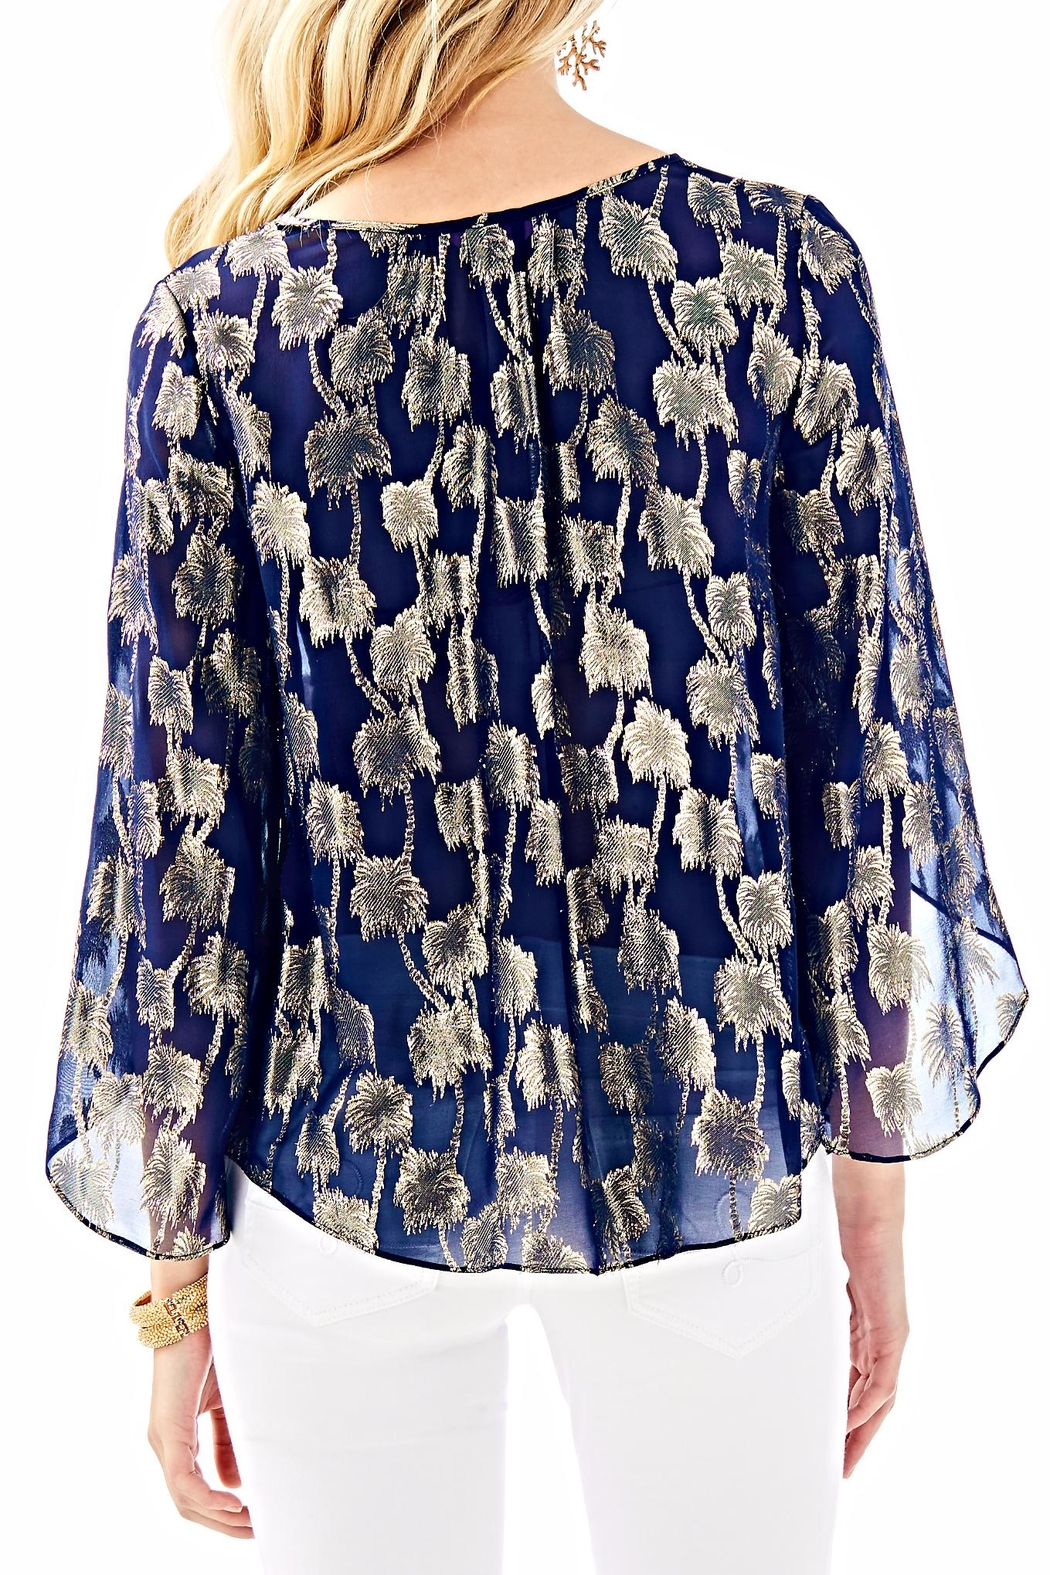 Lilly Pulitzer Beccer Clip Top - Front Full Image